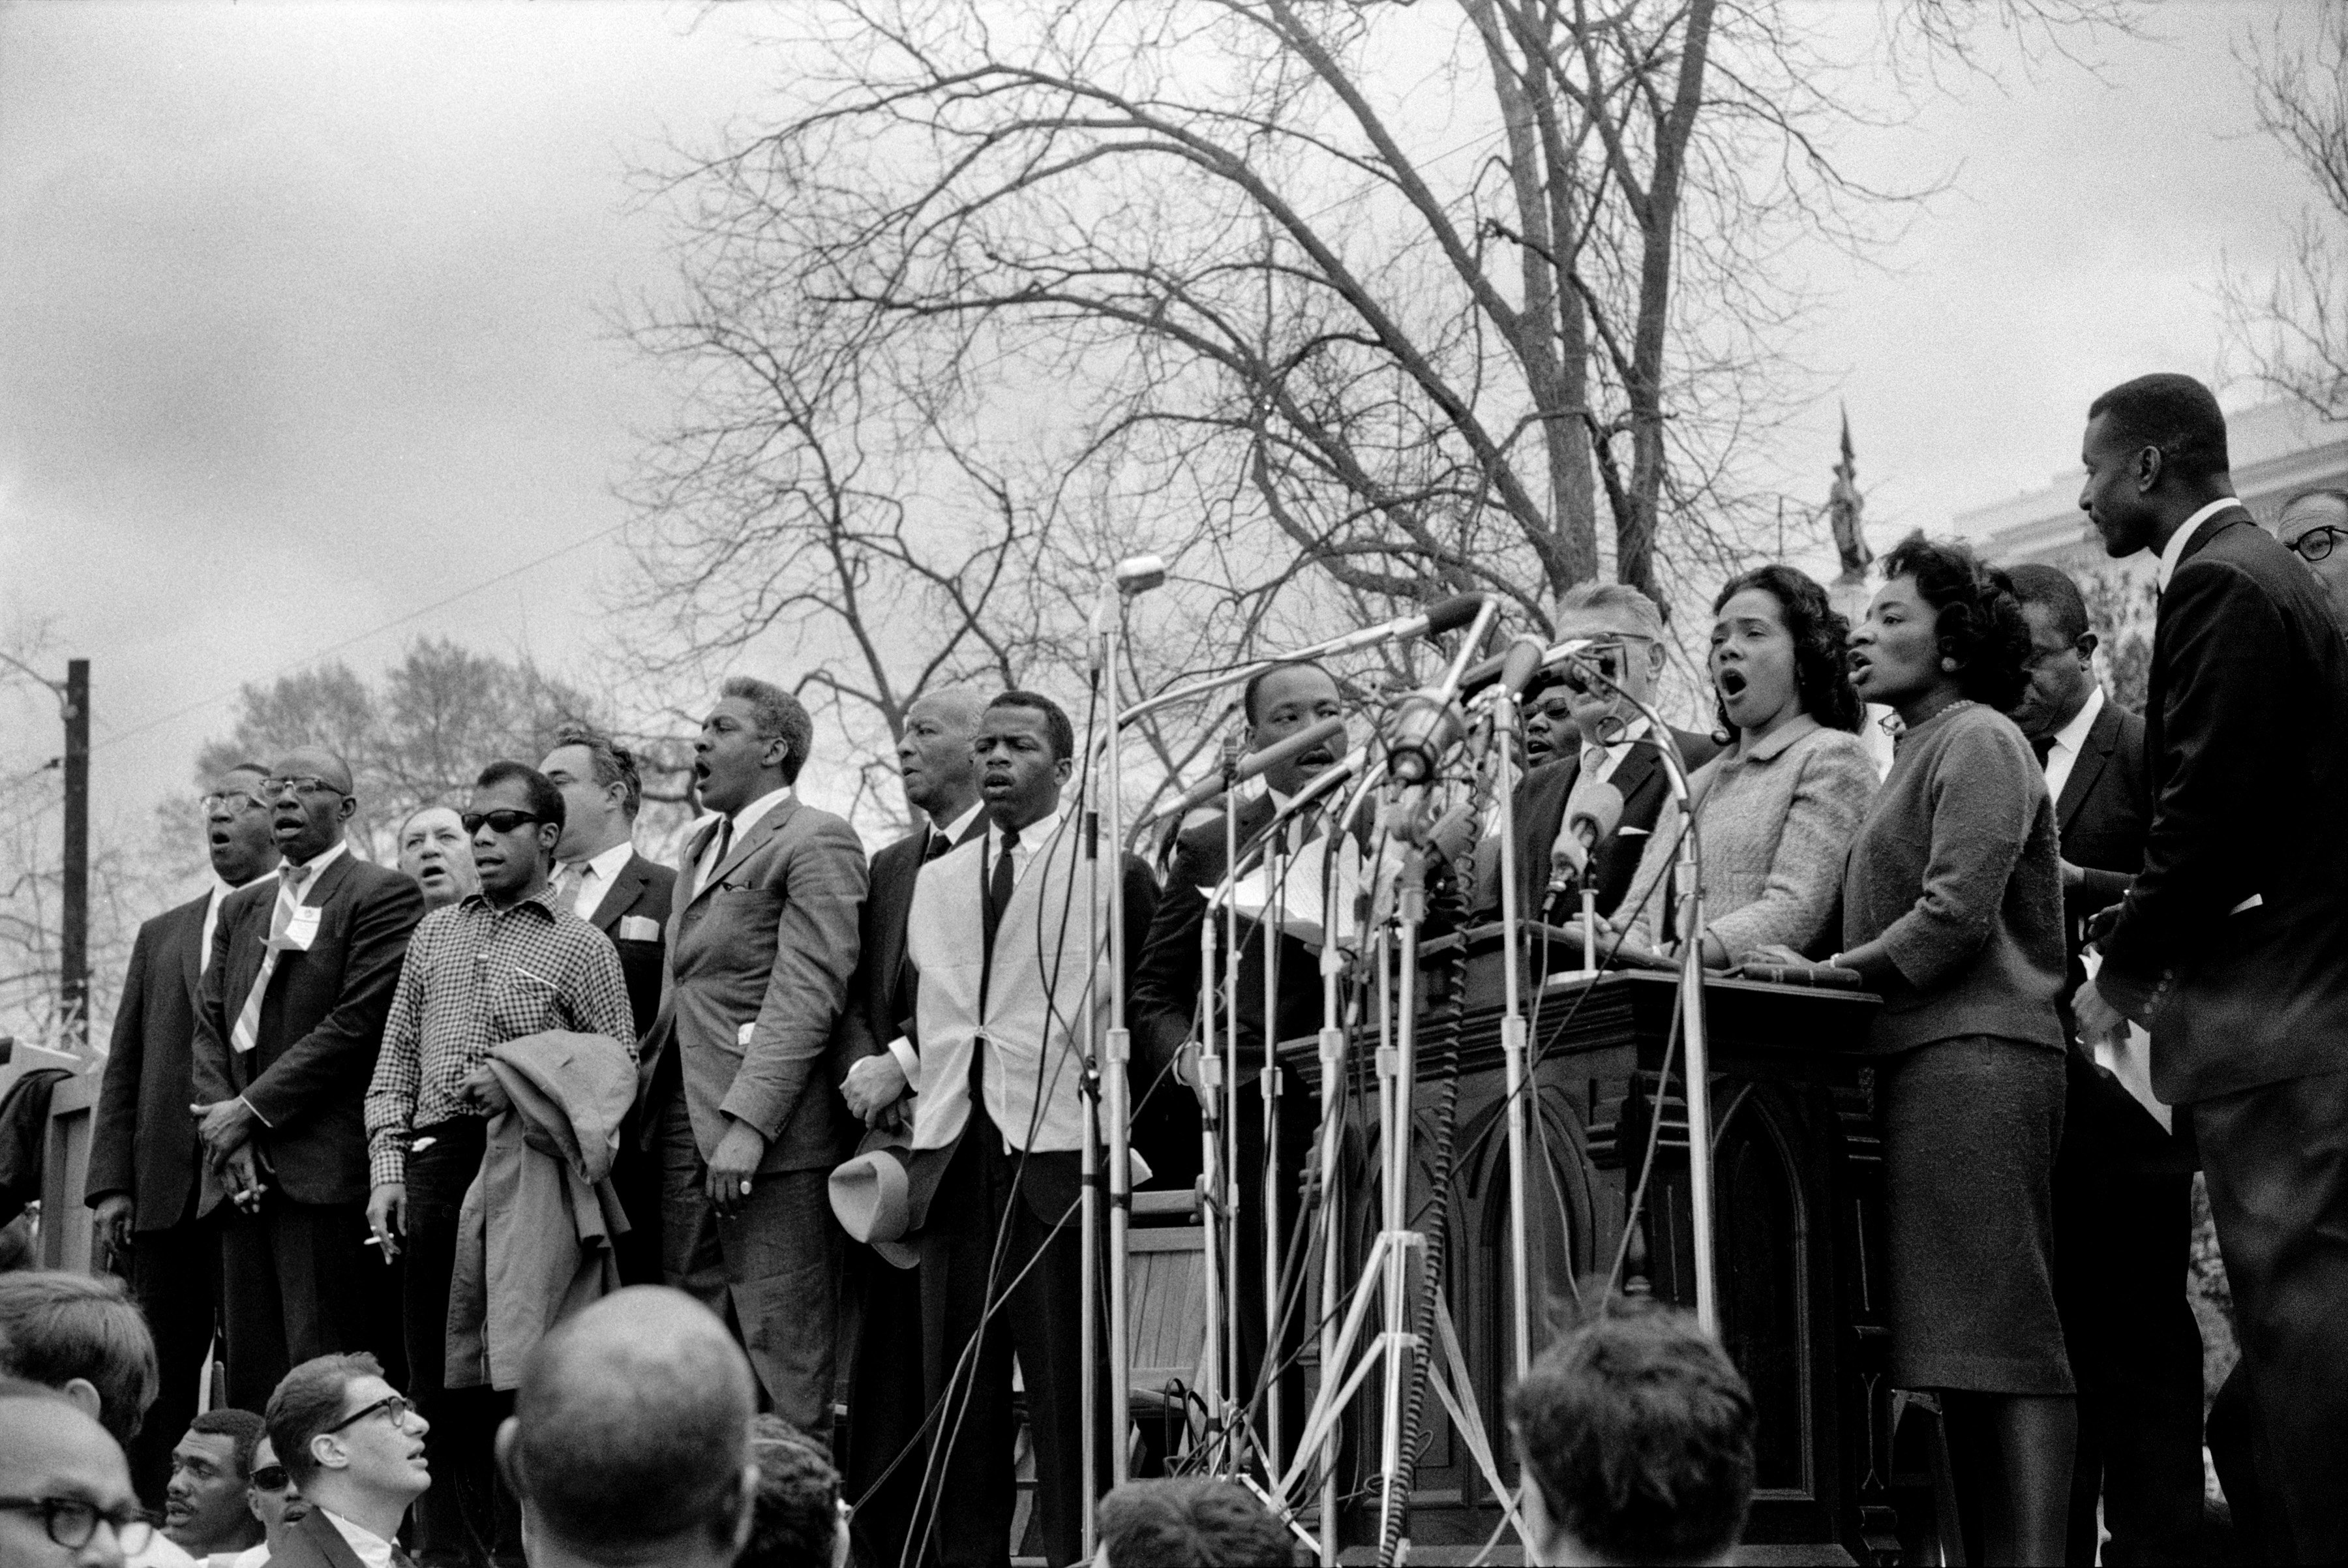 Civil rights and Union leaders sing 'We Shall Overcome' at the conclusion of the Selma to Montgomery civil rights march on March 25, 1965 in Montgomery, Alabama.